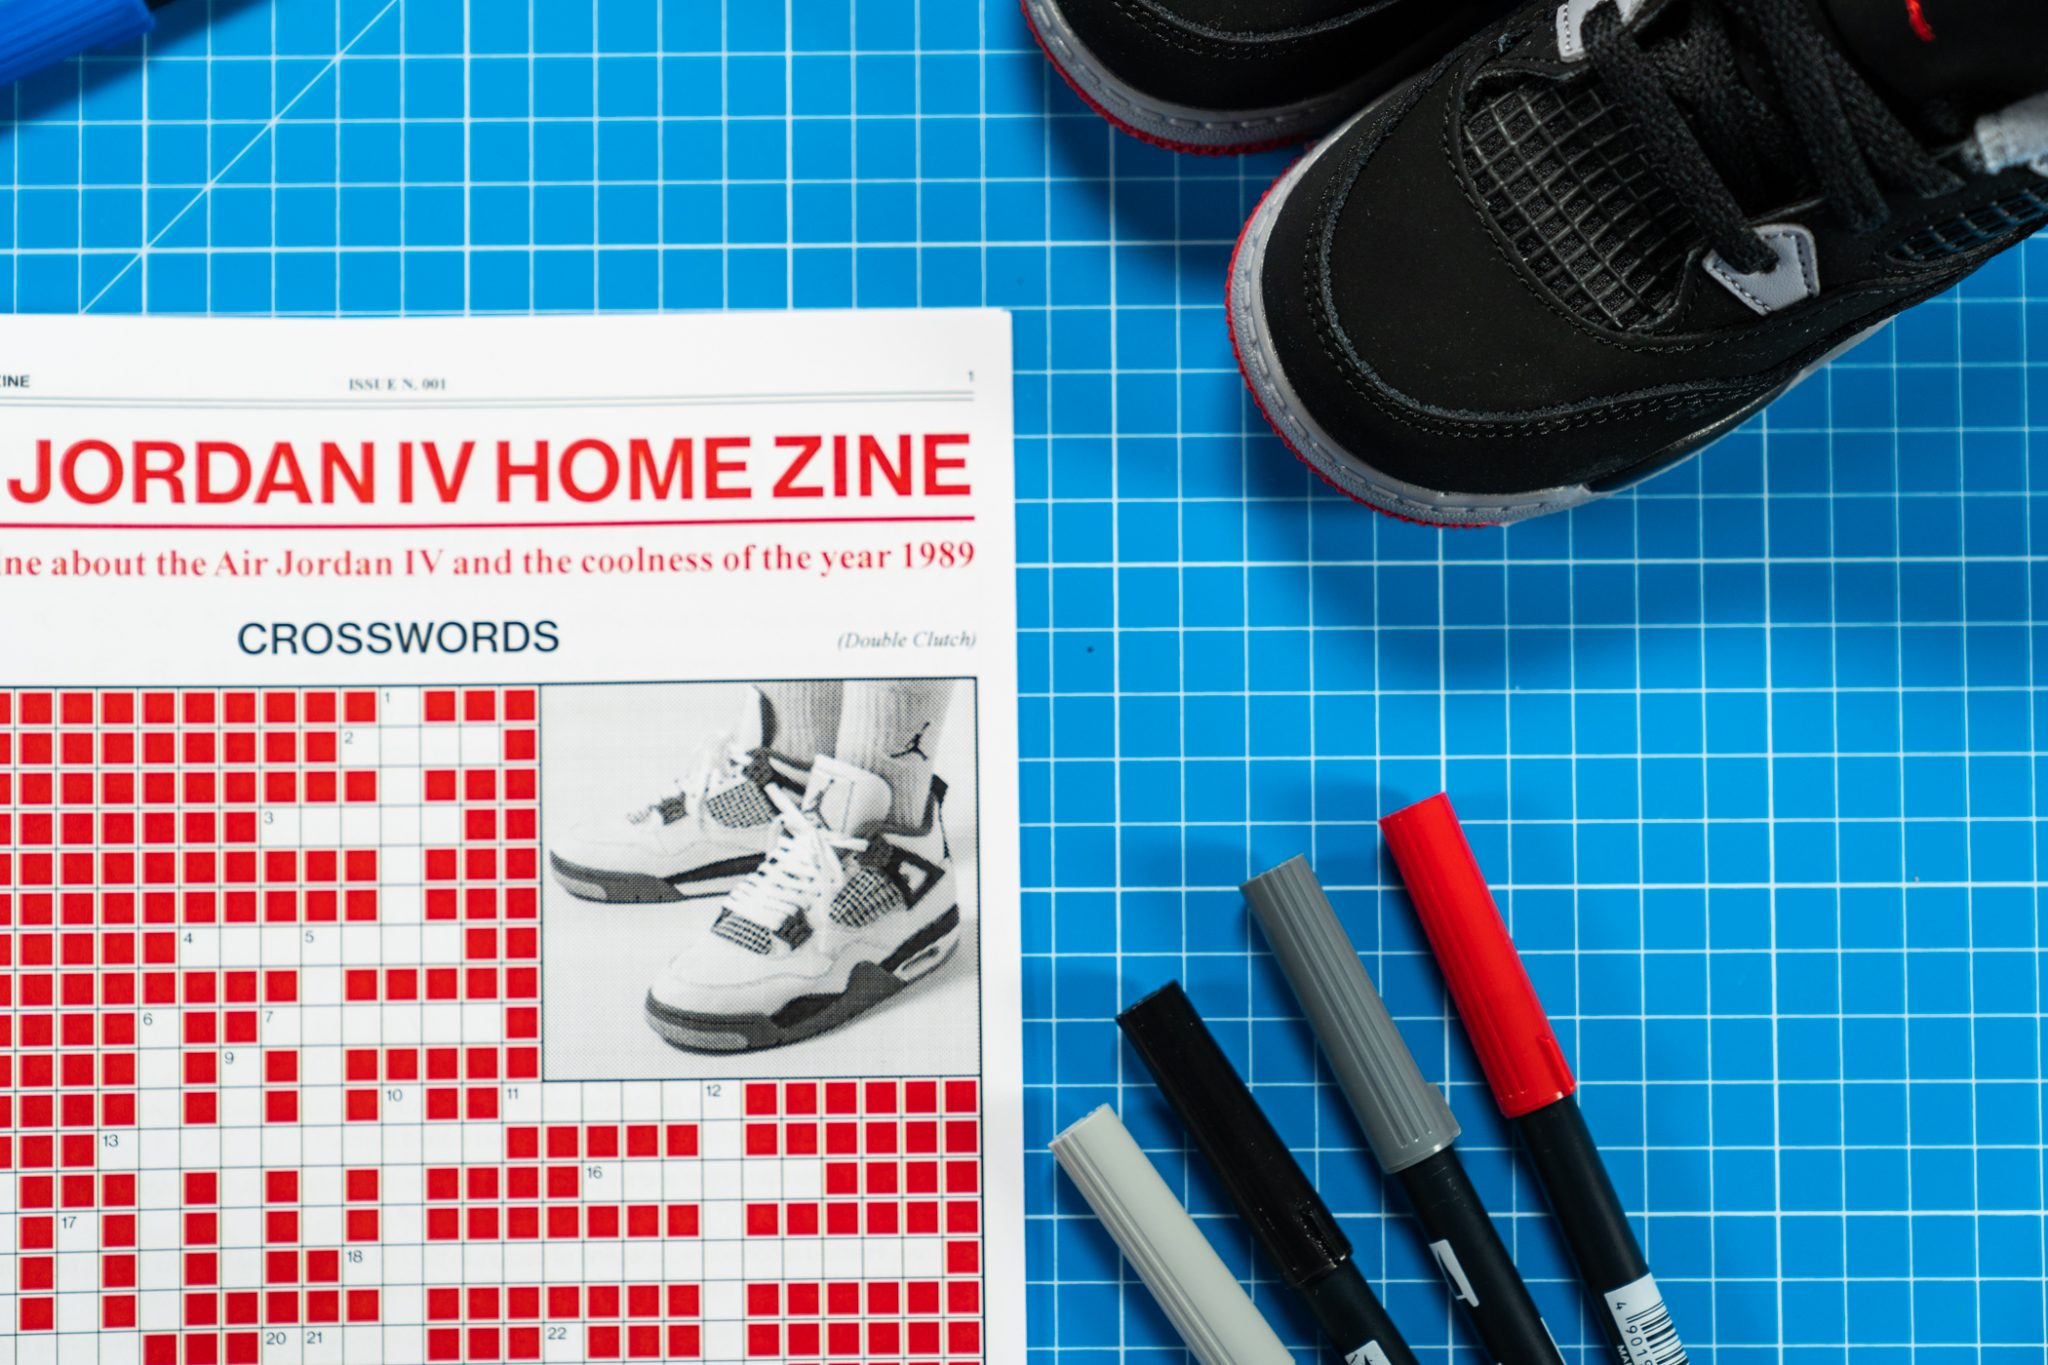 The Jordan 4 Home Zine by Double Clutch